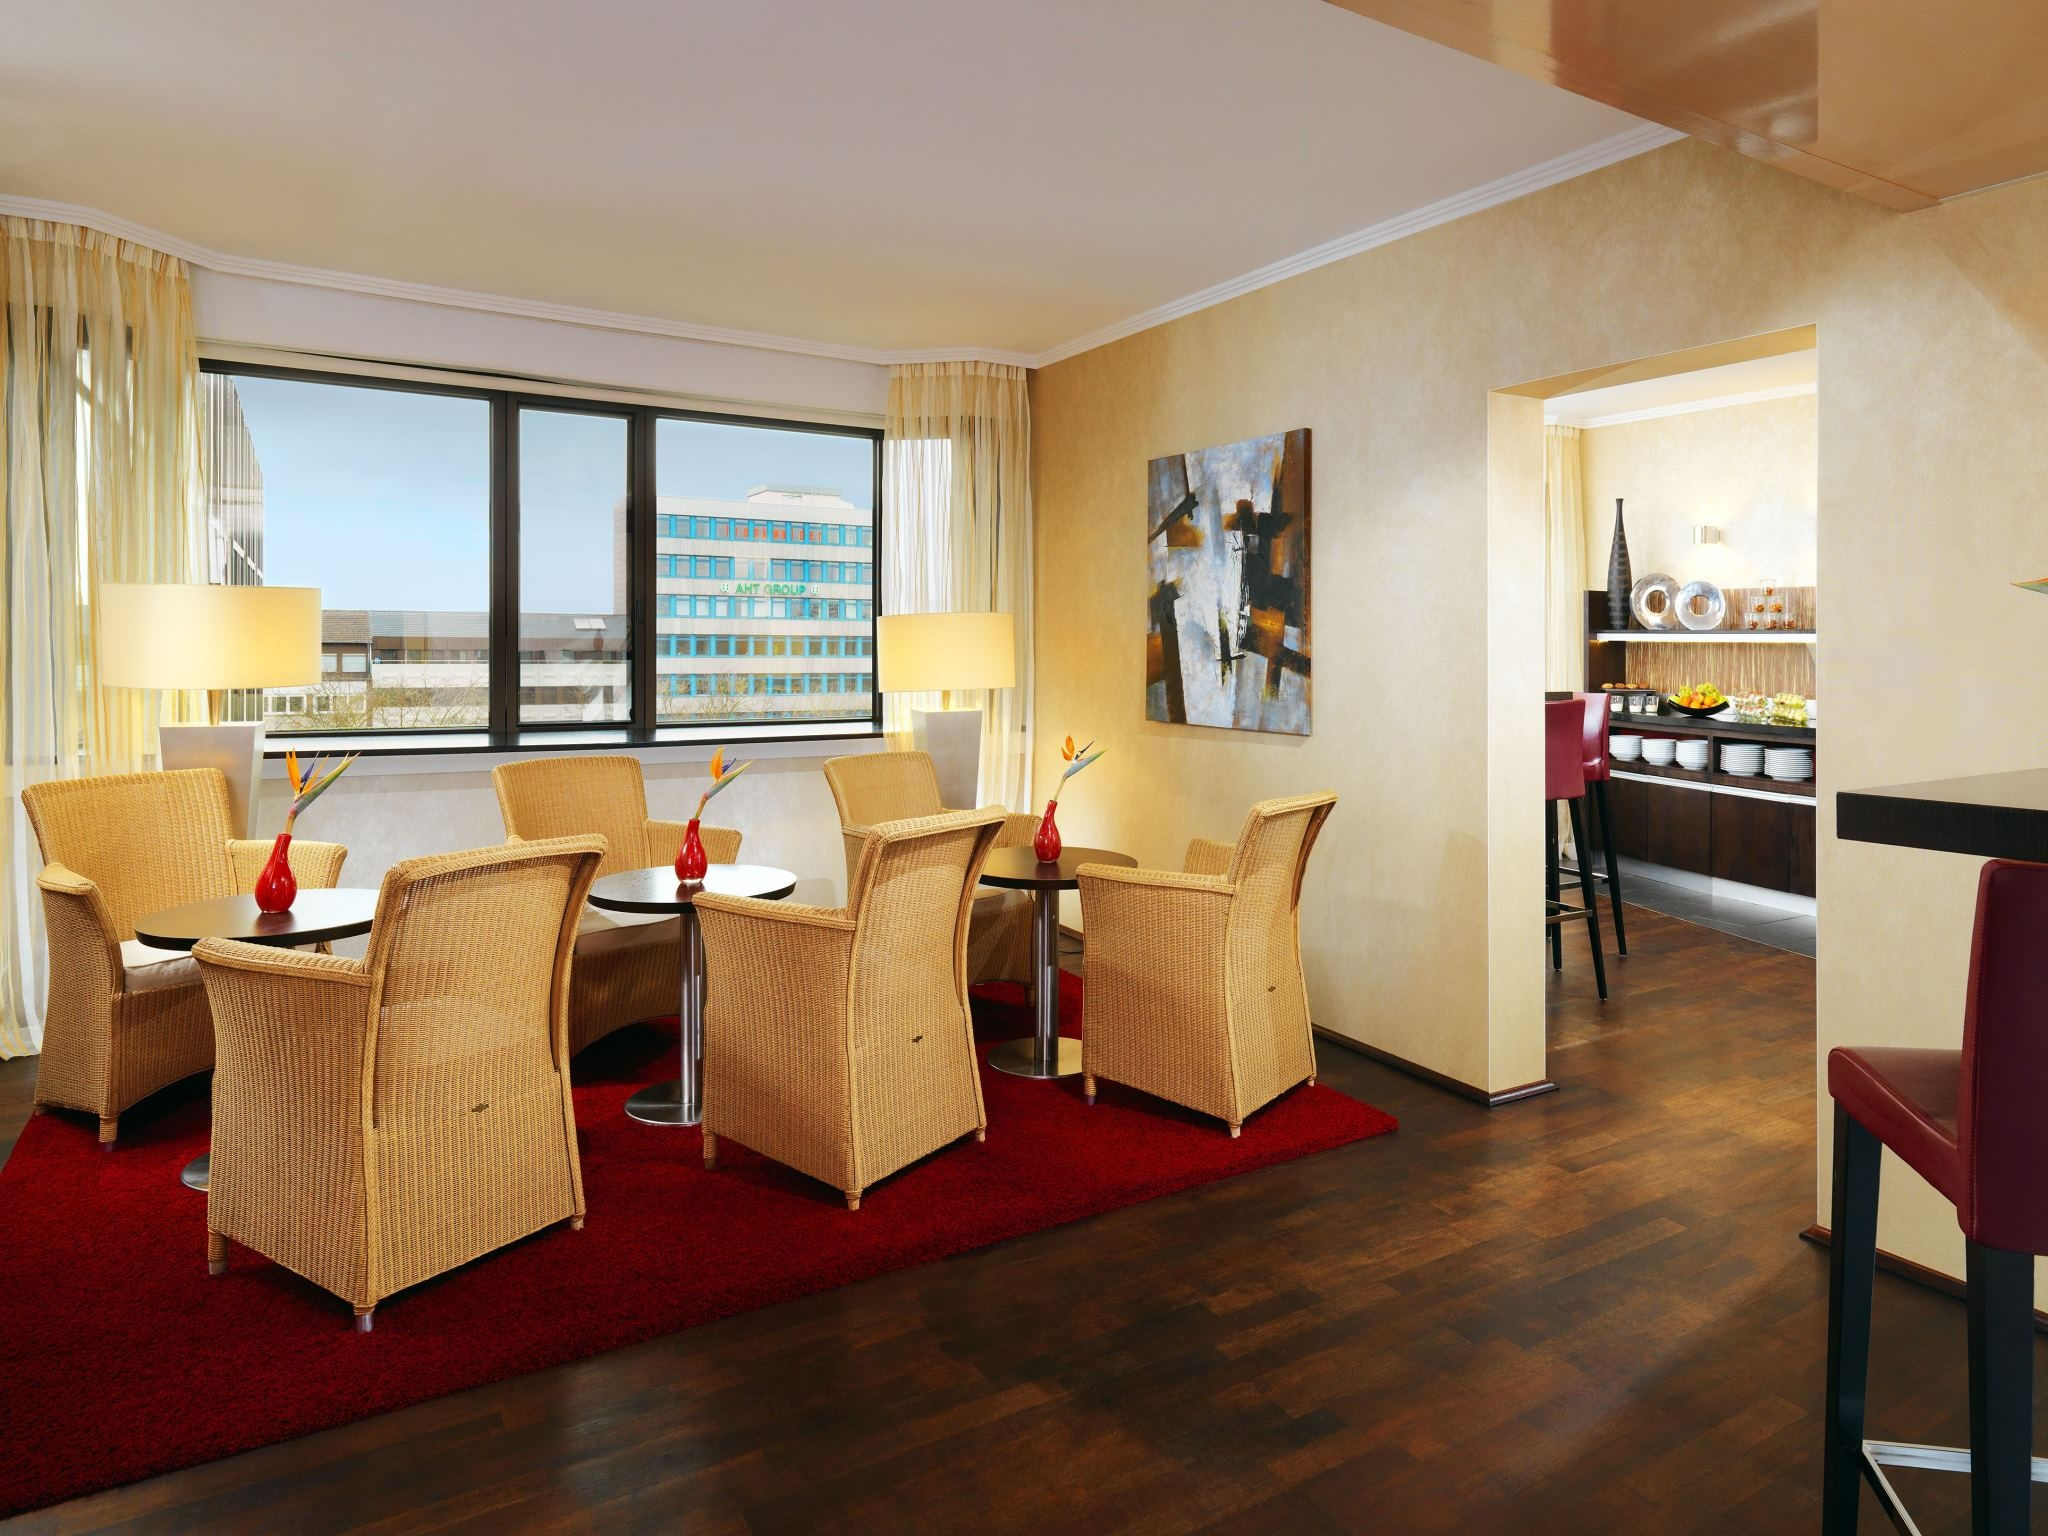 Hotel room Essen Germany - Club Lounge